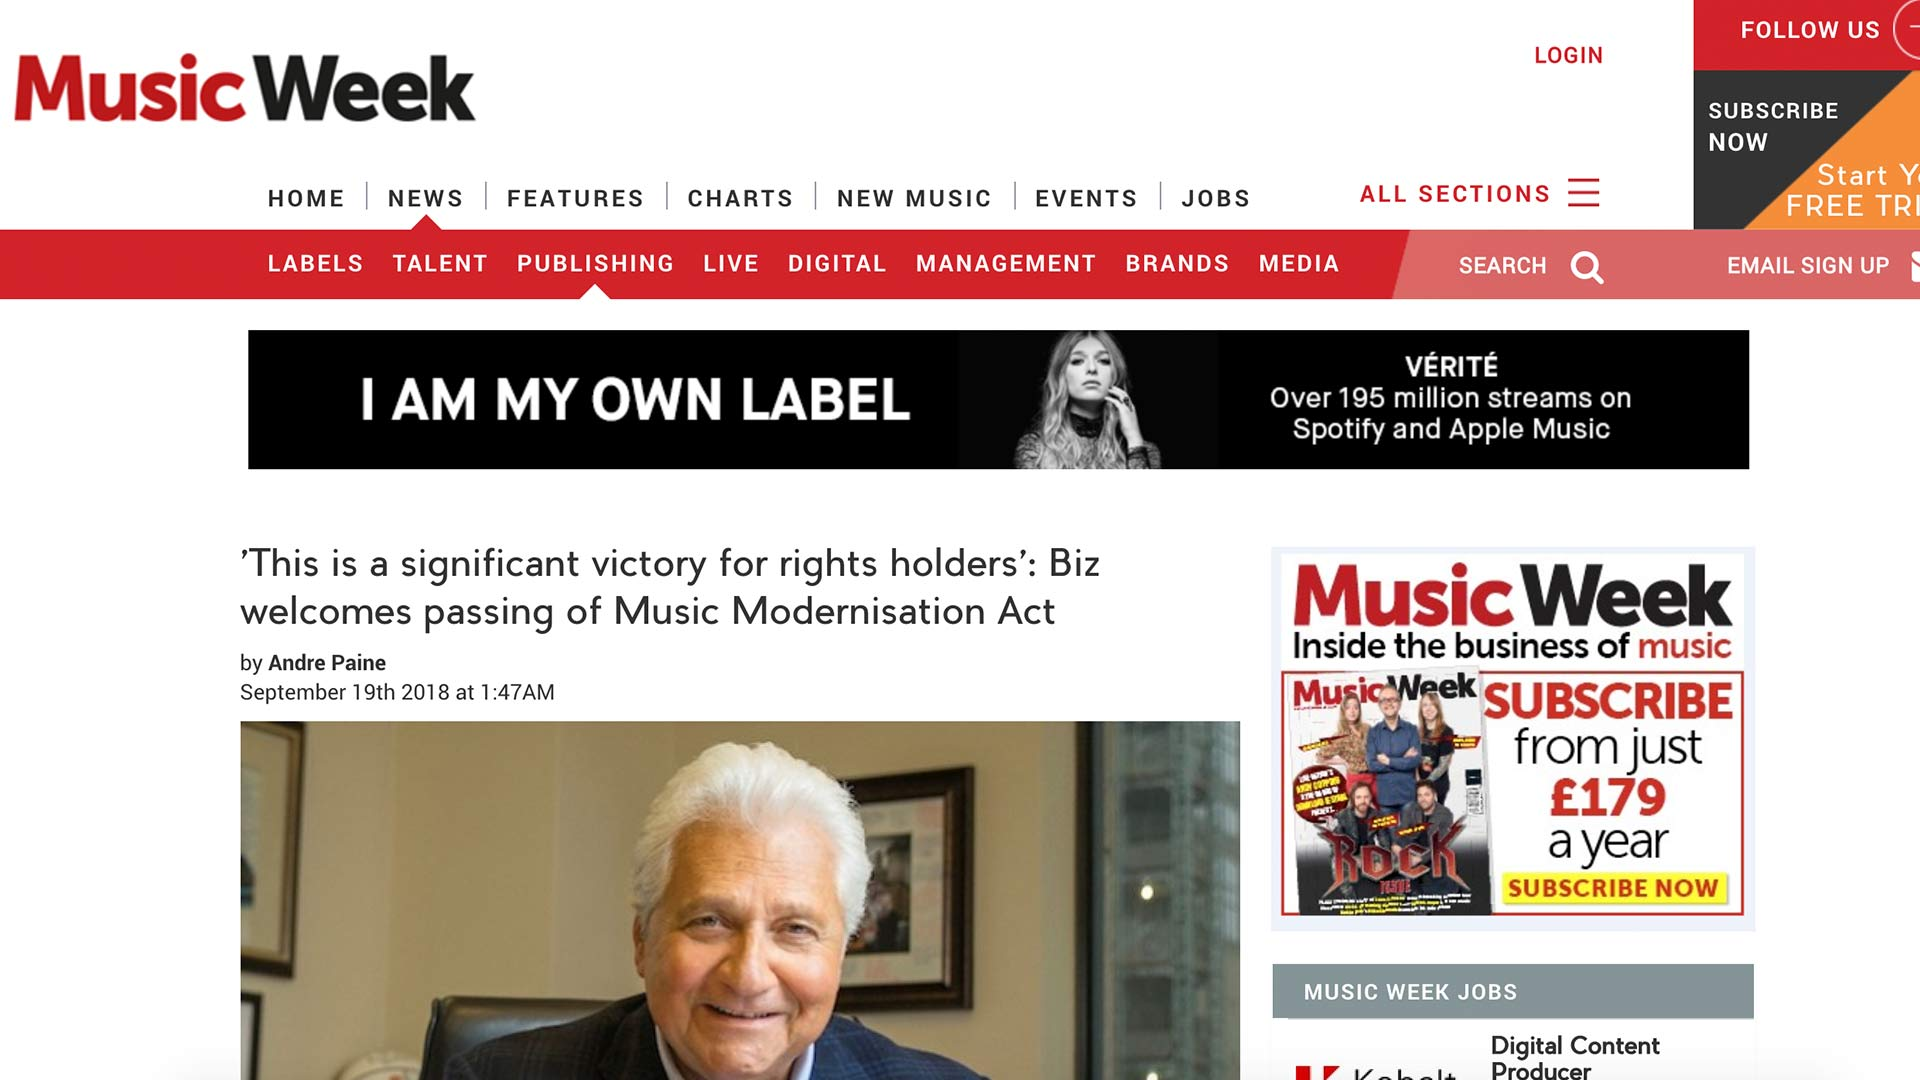 Fairness Rocks News 'This is a significant victory for rights holders': Biz welcomes passing of Music Modernisation Act